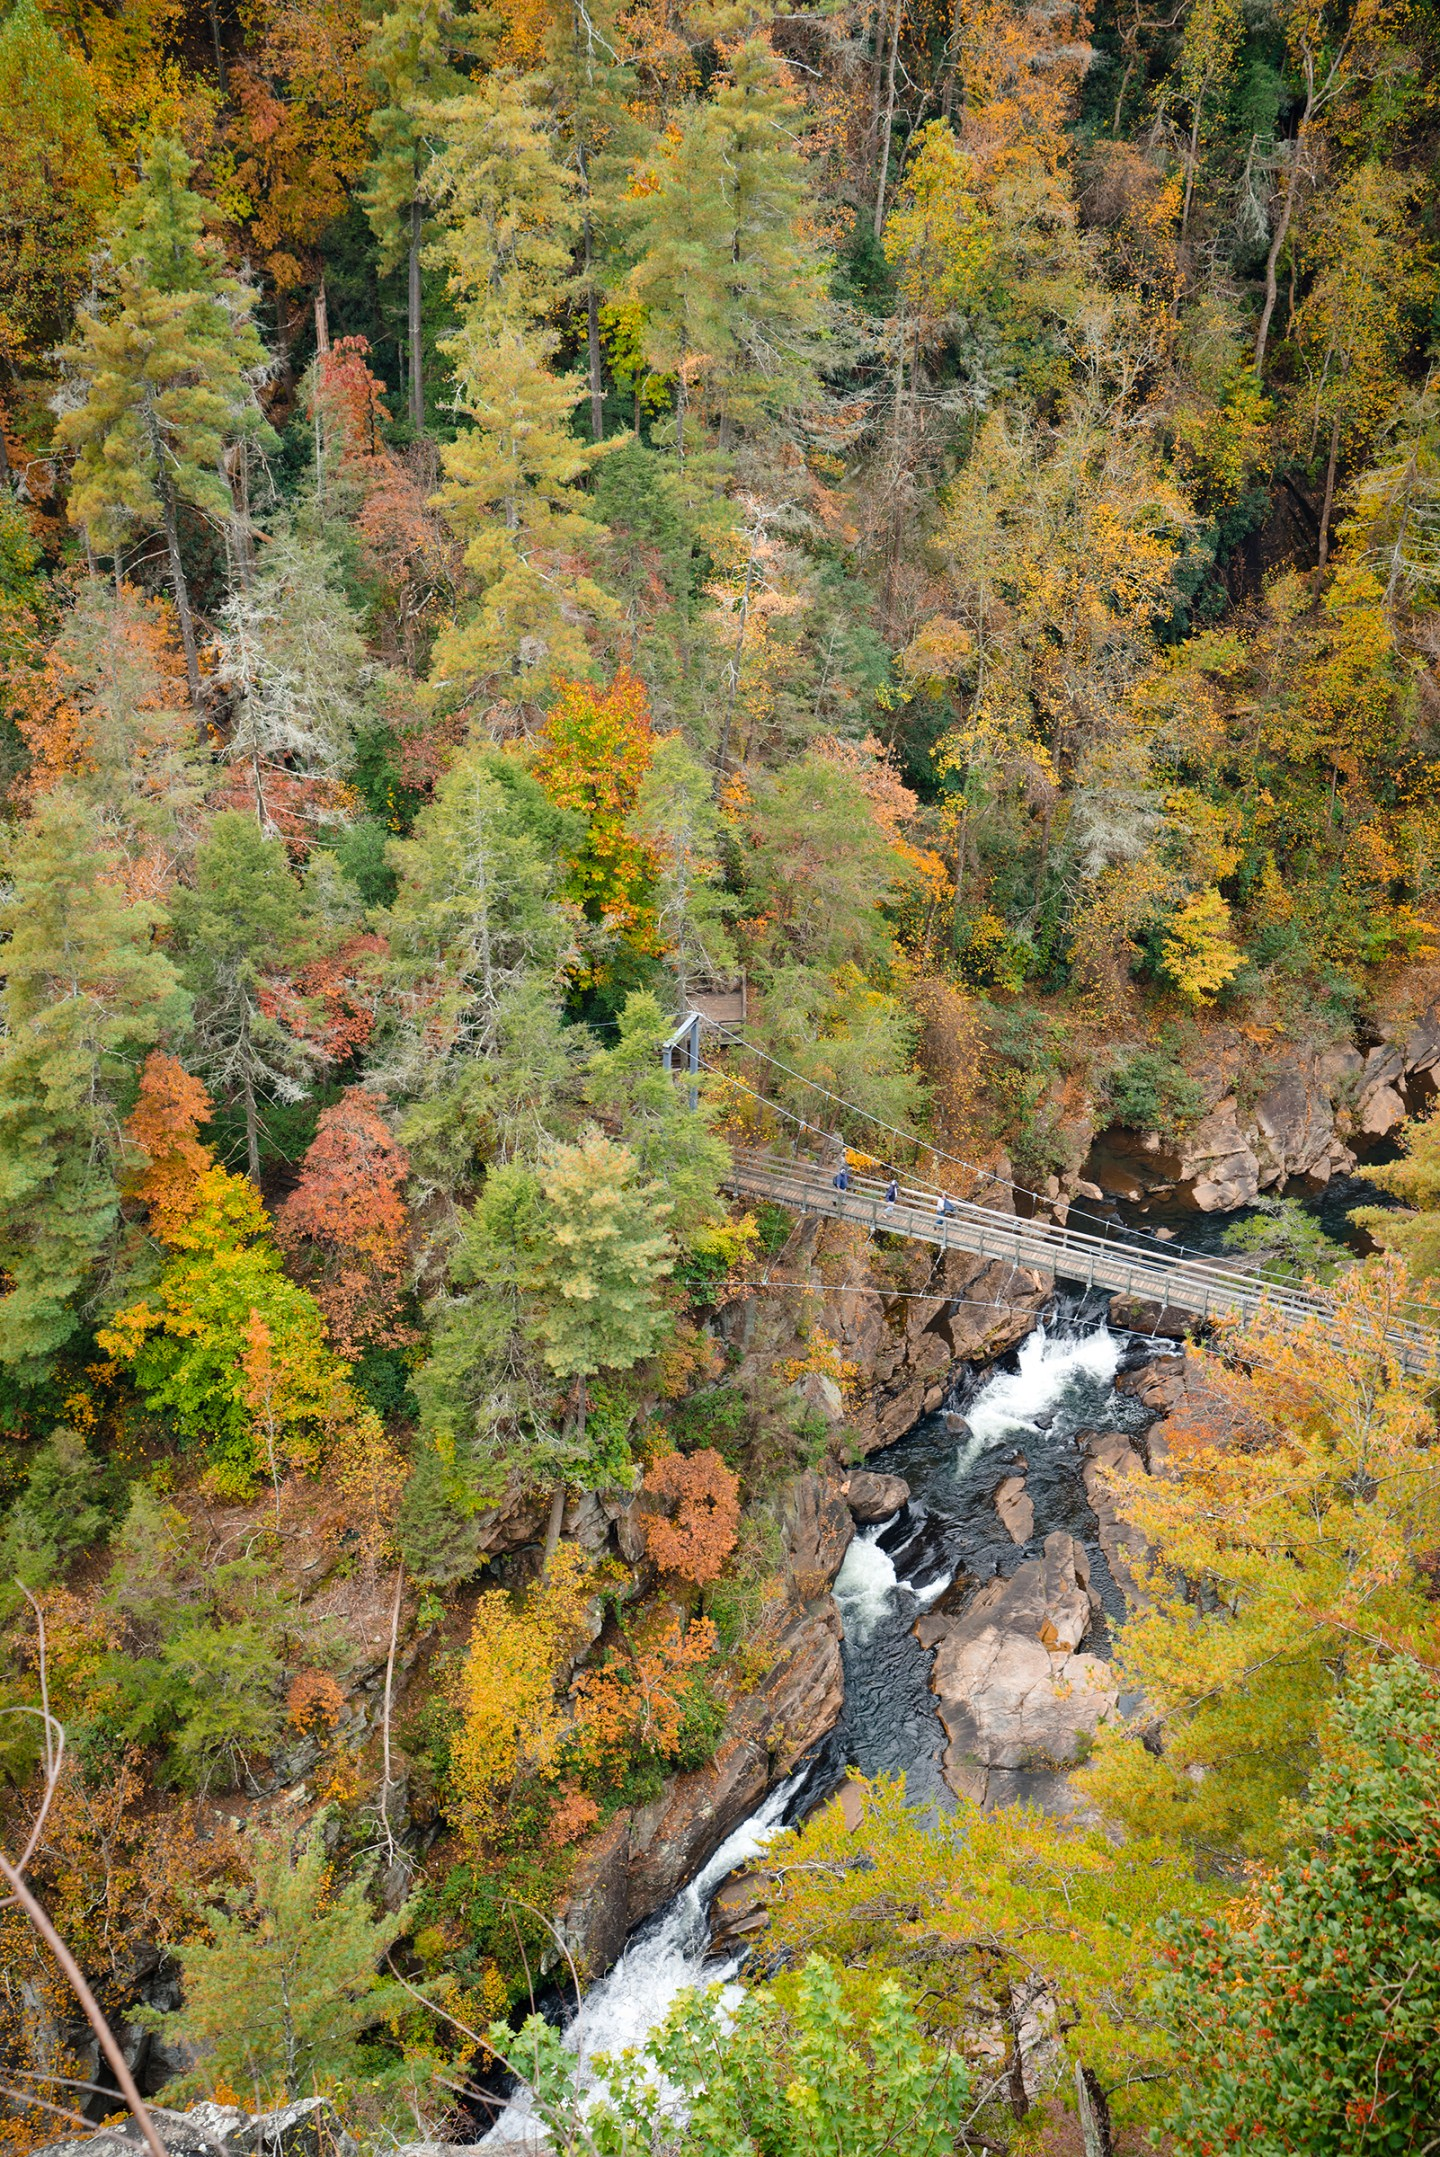 Tallulah-Gorge-looking-down-fall BSB Travel:  Top Ten Georgia State Parks for Fall Color